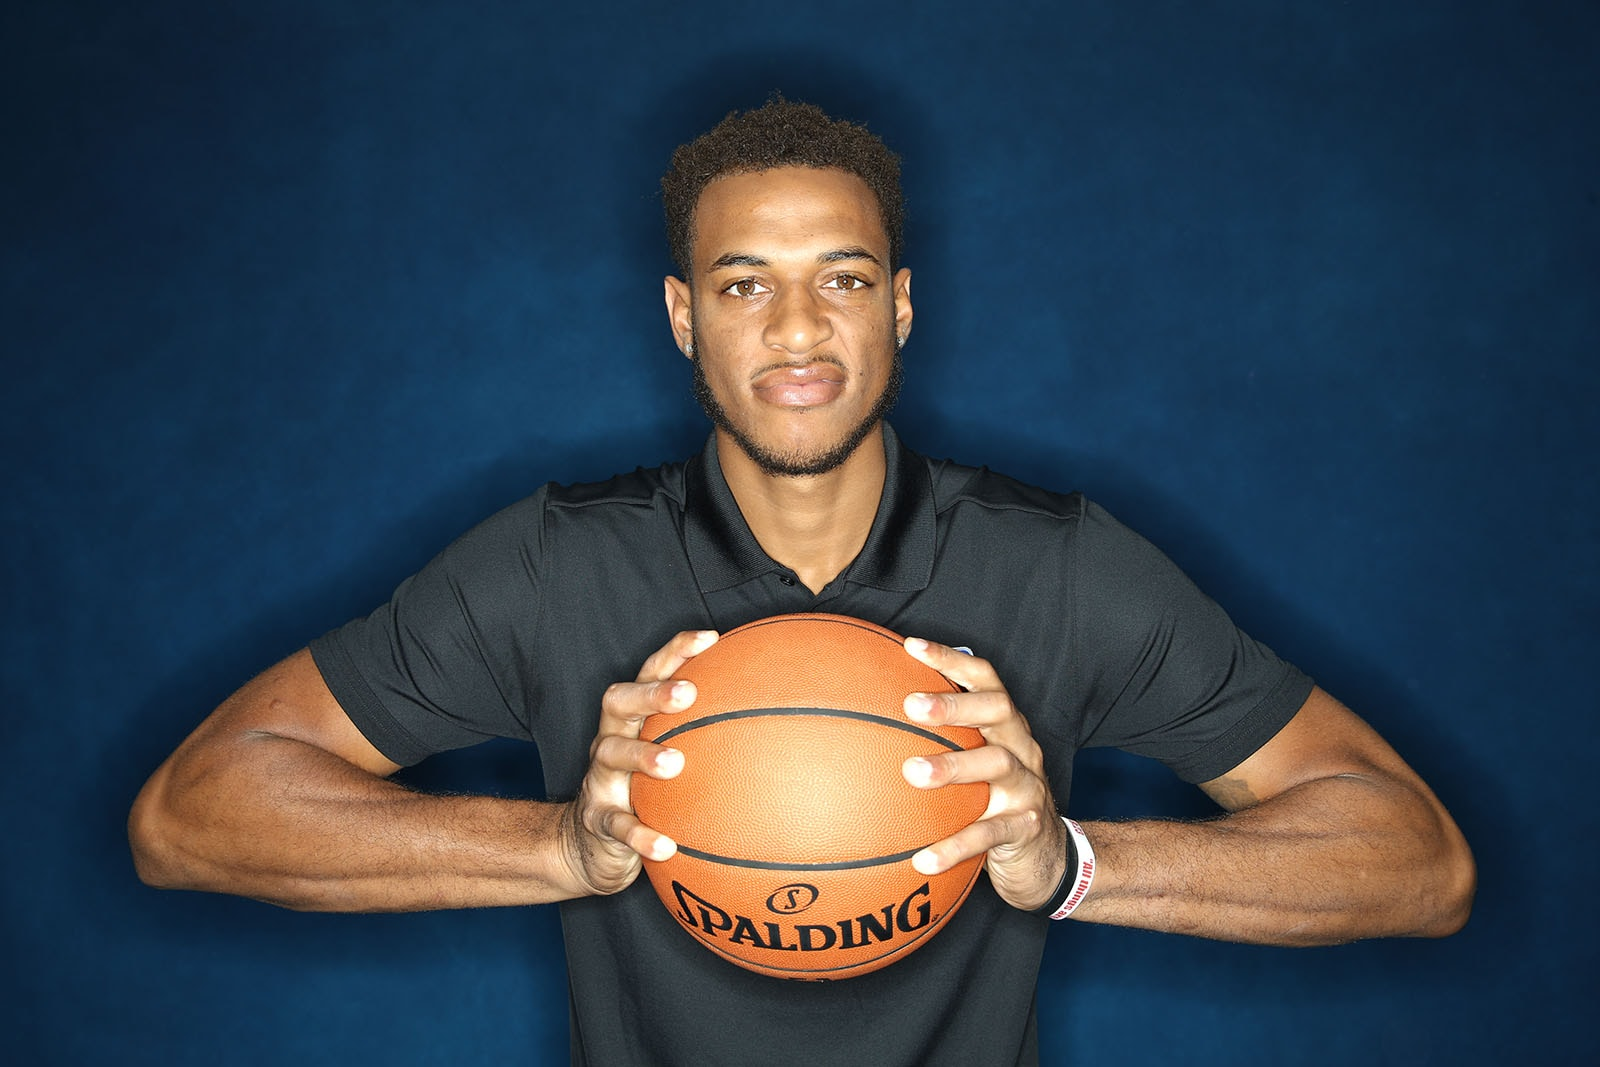 Daniel Gafford's Headshot from the NBA Lottery